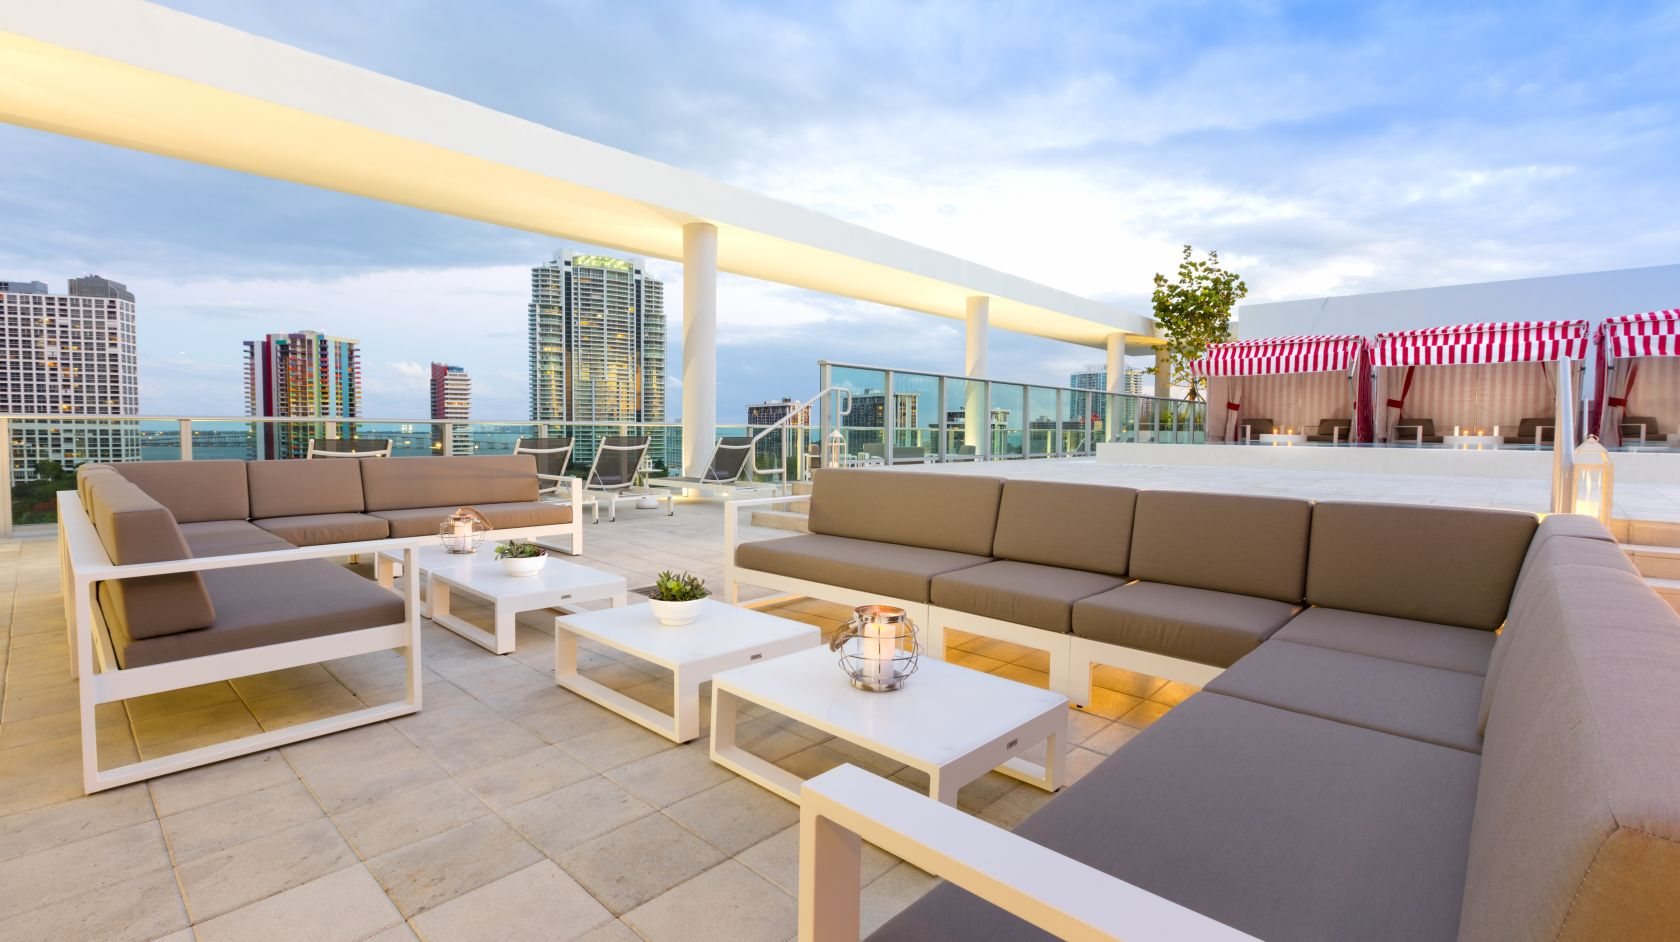 lounge at our rooftop at Novotel Miami Brickell hotel